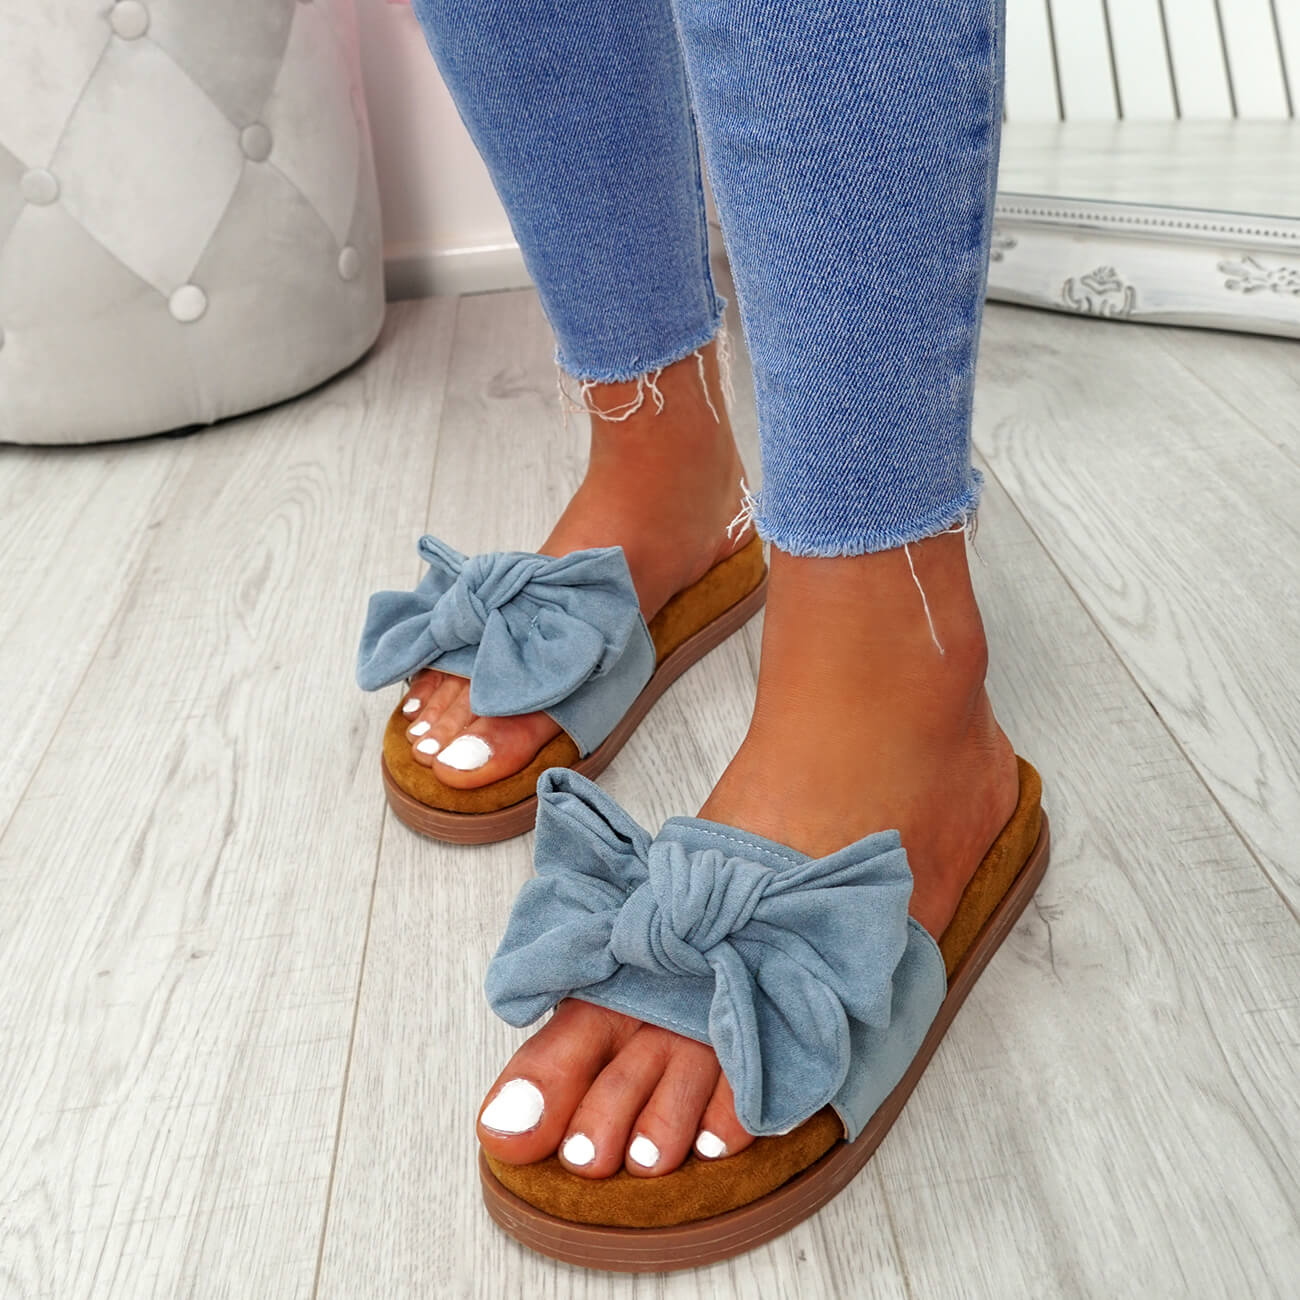 WOMENS-LADIES-FLAT-SANDALS-FRONT-BOW-COMFY-SUMMER-CASUAL-HOLIDAY-SHOES-SIZE-UK thumbnail 20